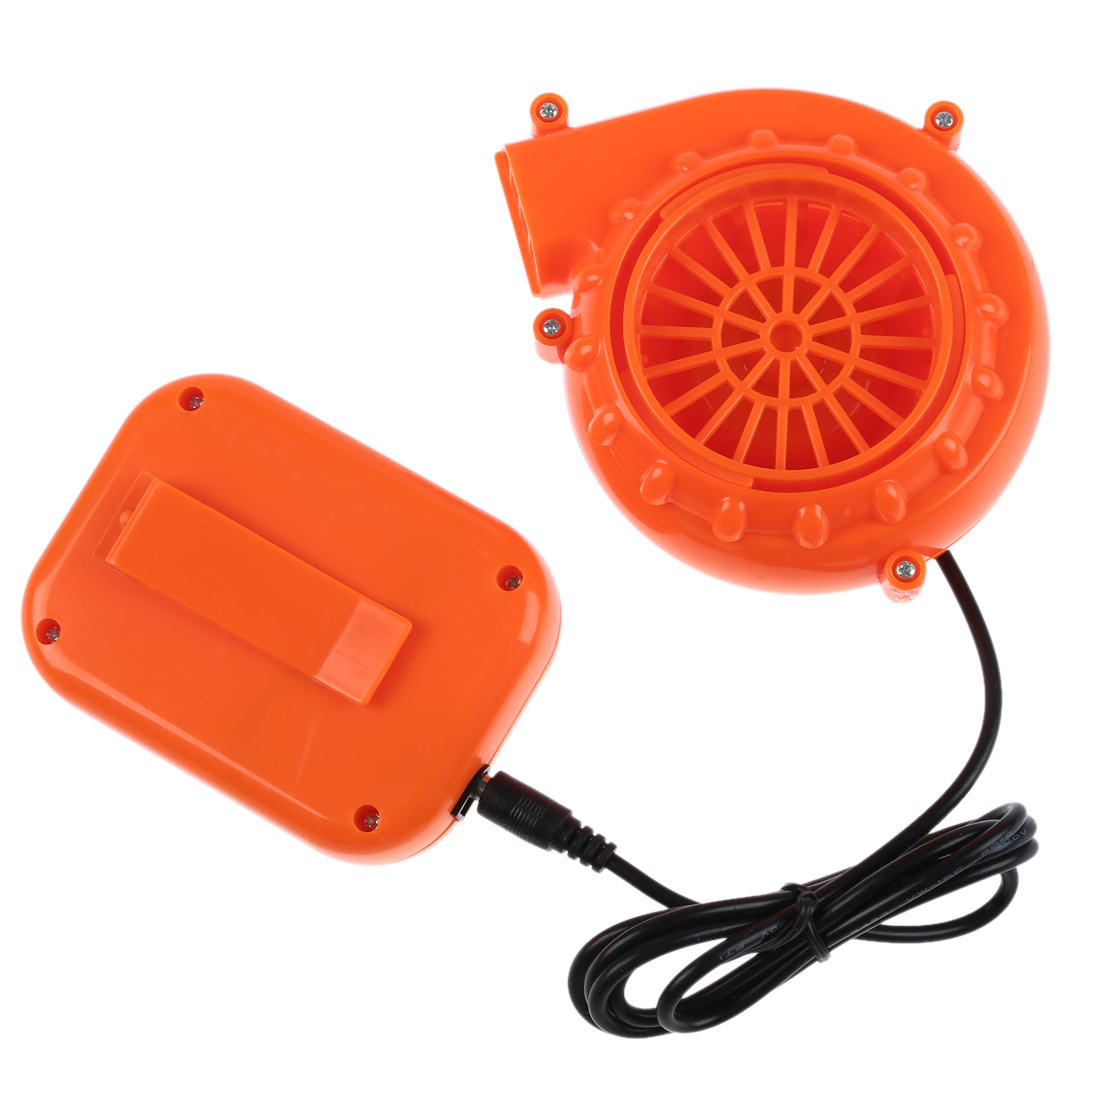 Mini Fan Blower for Mascot Head Inflatable Costume 6V Powered 4xAA Dry Battery Orange It can be used for gas mode, inflatableMini Fan Blower for Mascot Head Inflatable Costume 6V Powered 4xAA Dry Battery Orange It can be used for gas mode, inflatable